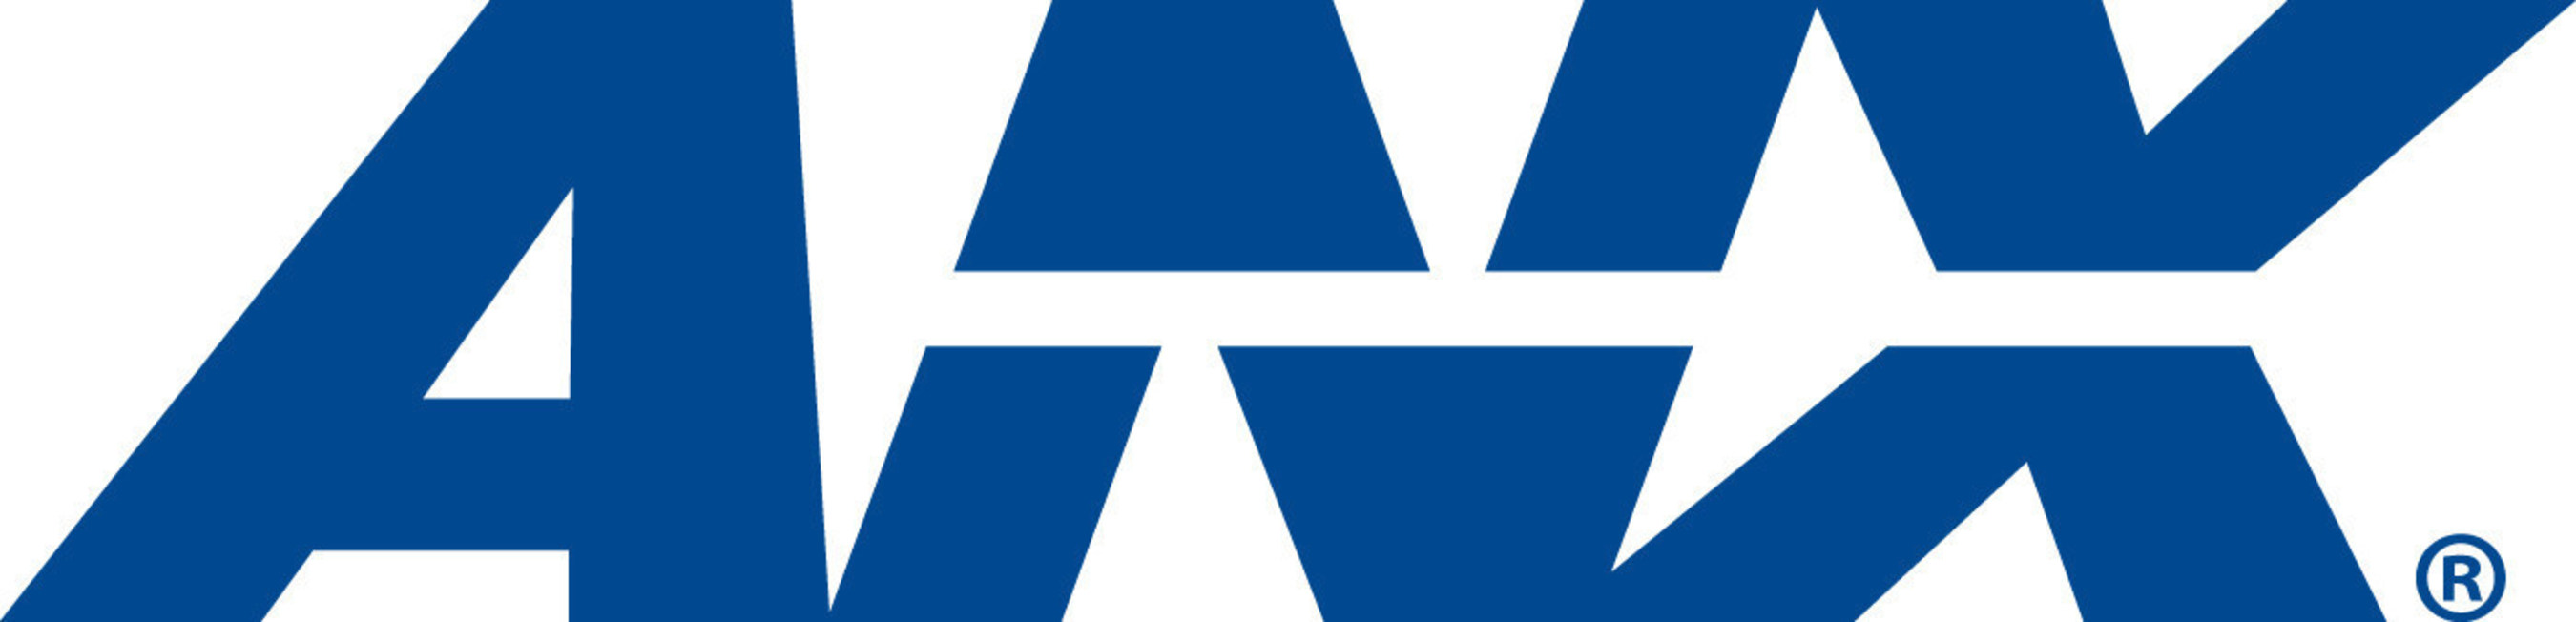 ANX Announces Industry's First PCI QSA Validated Point-to-Point Encryption Solution